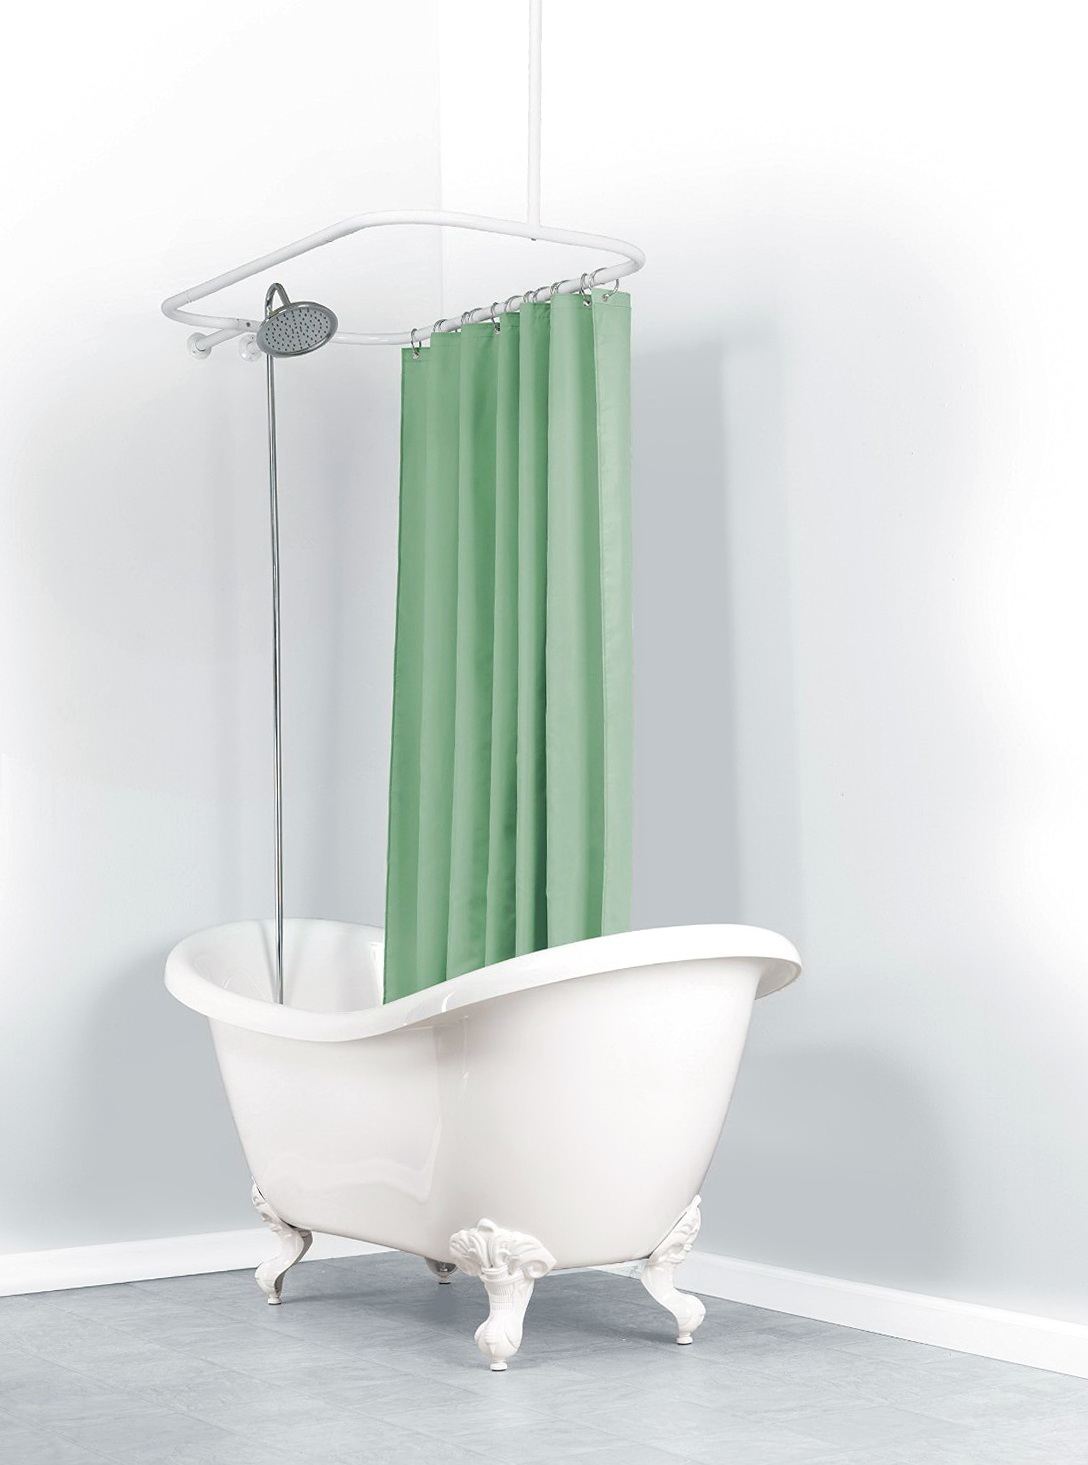 Ceiling Mount Shower Curtain Rod Clawfoot Tub  Home Design Ideas